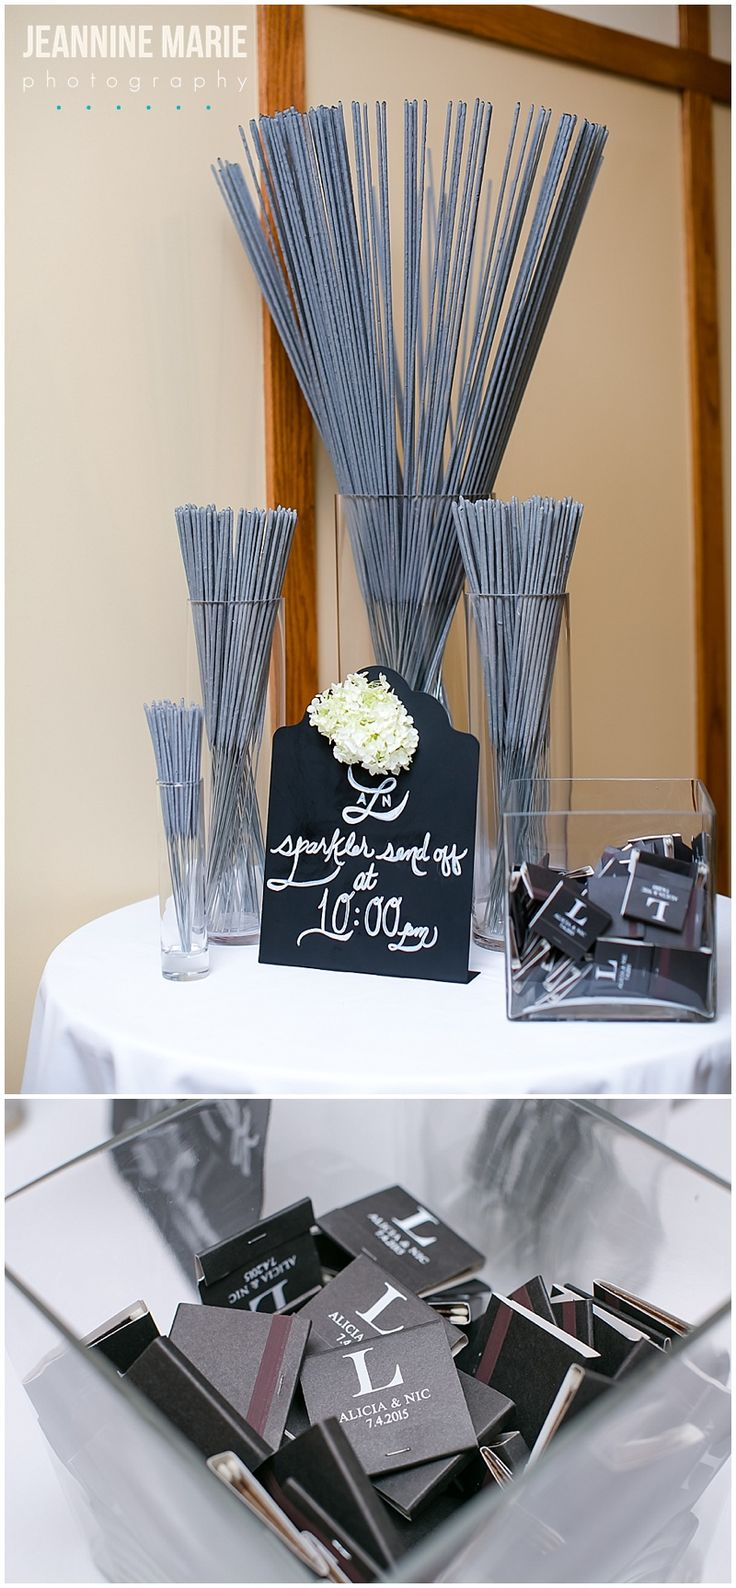 Sparklers and personalized matches as wedding guest favors for Olympic Hills…